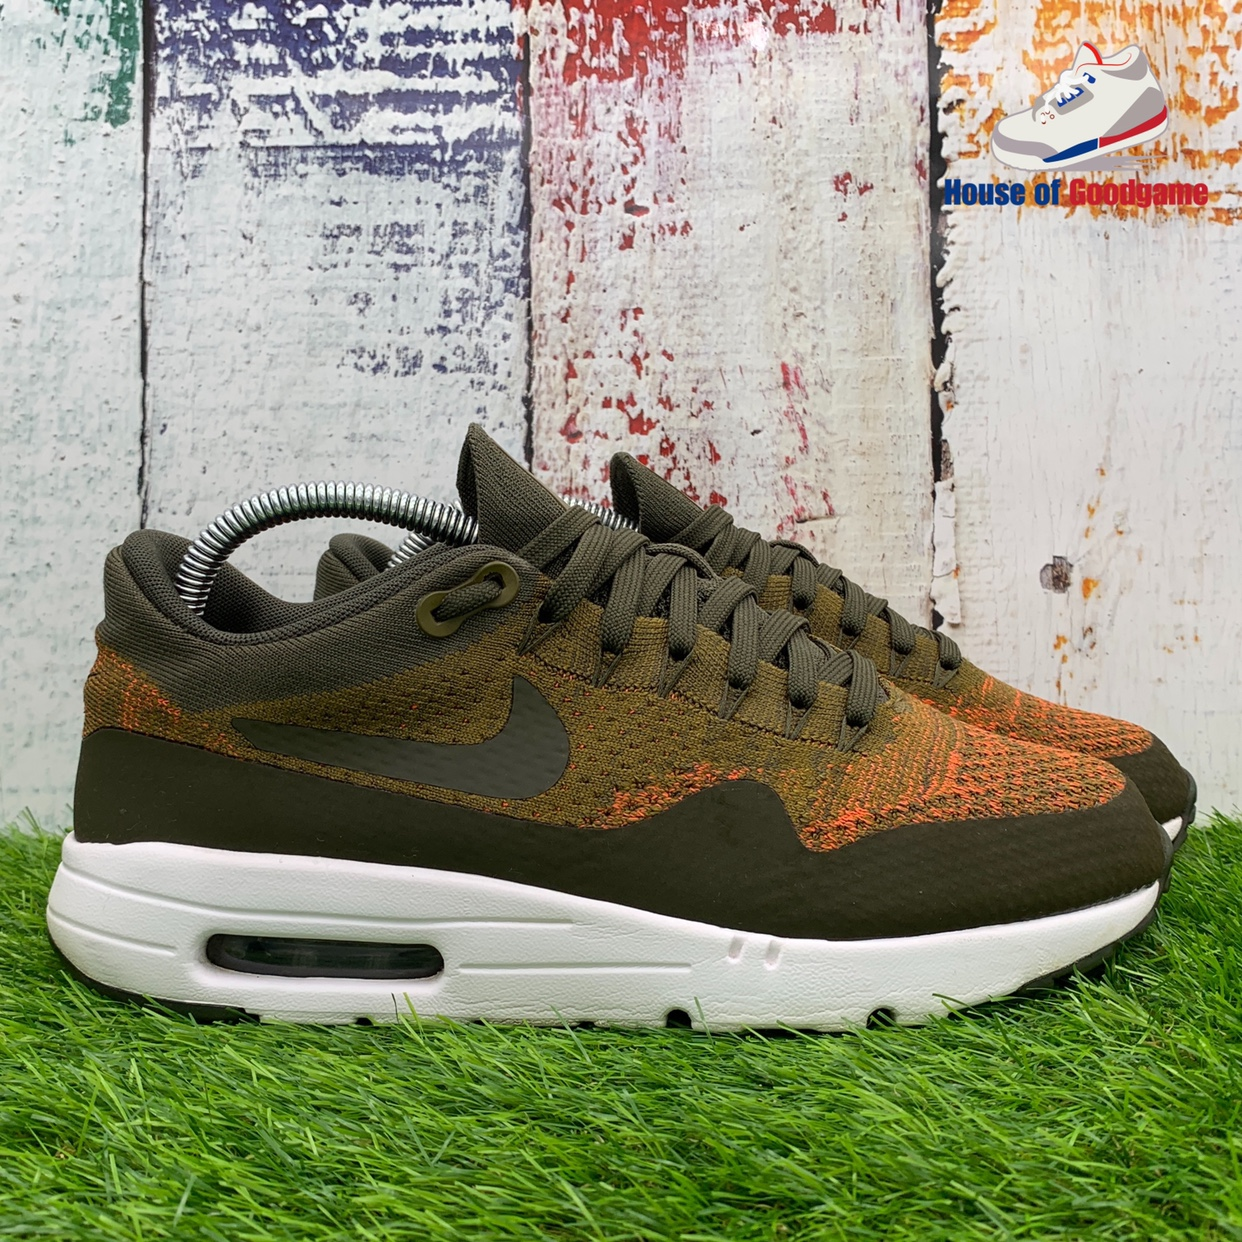 Air Max 1 Ultra Flyknit 'Olive Flak' Colour: Olive Depop